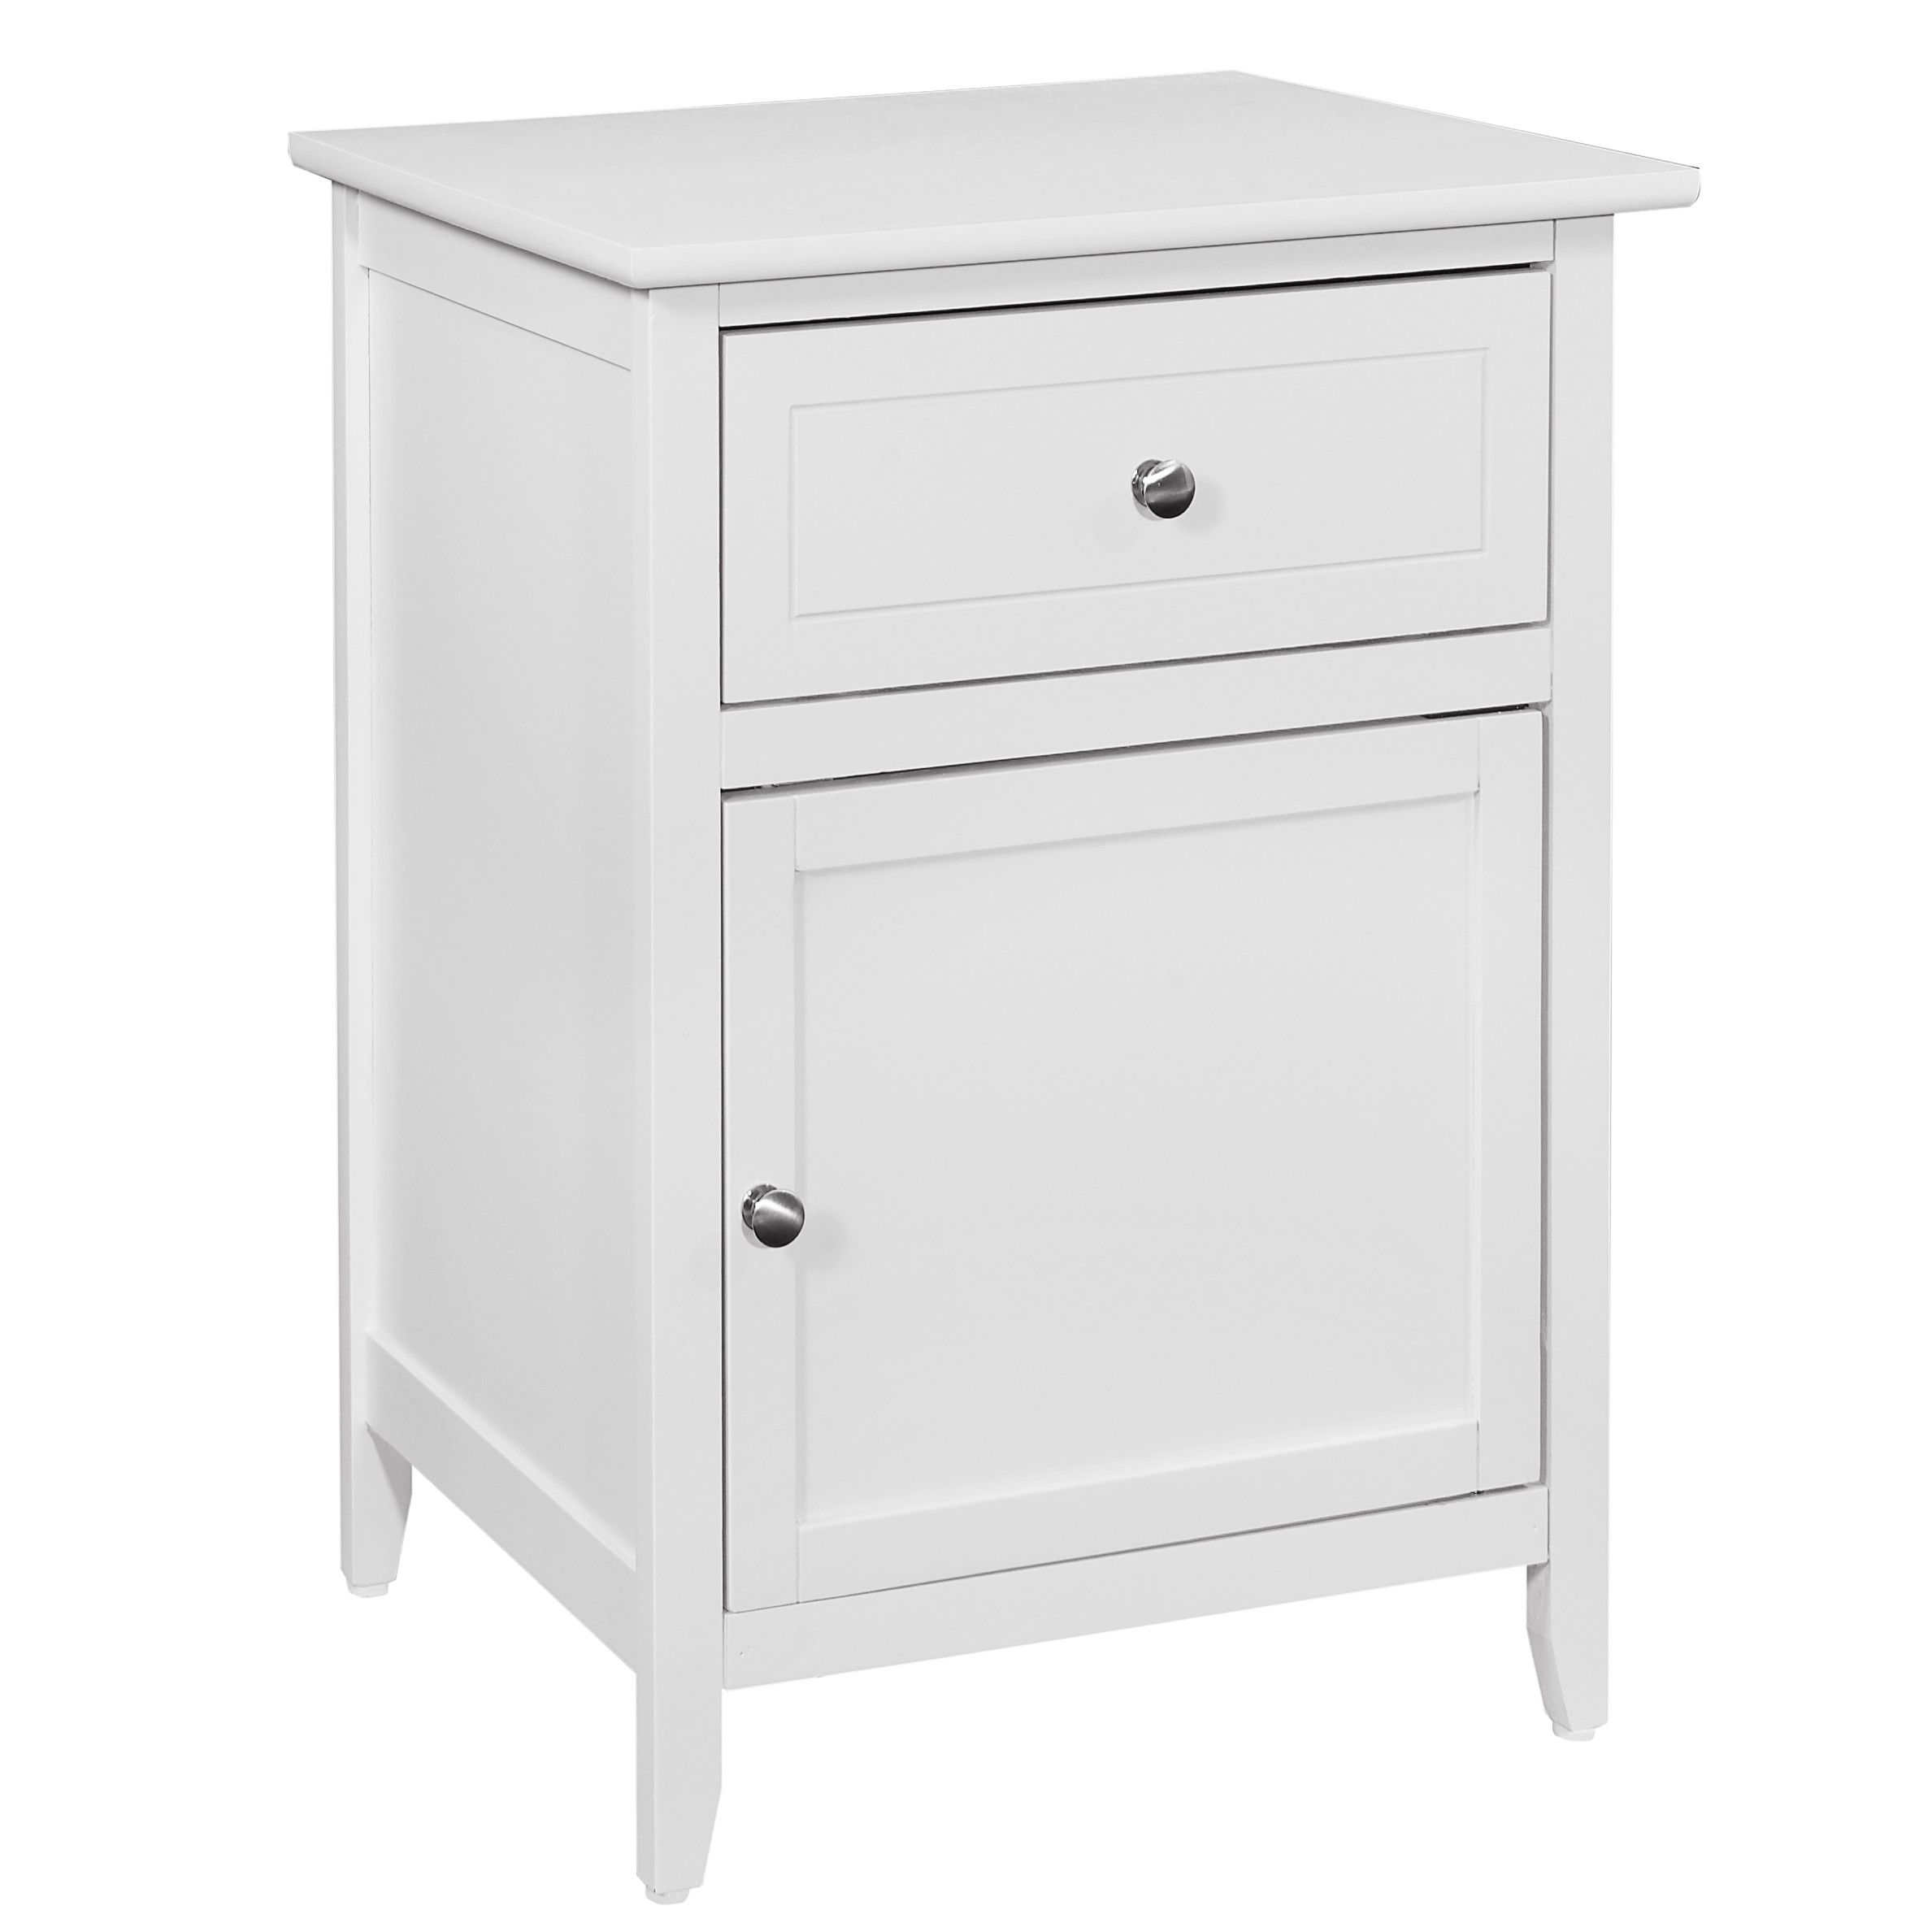 You Ll Love The Beacon 1 Drawer Nightstand At Wayfair Great Deals On All Furniture Products With Free Shipp Drawer Nightstand White Bedroom Furniture Drawers